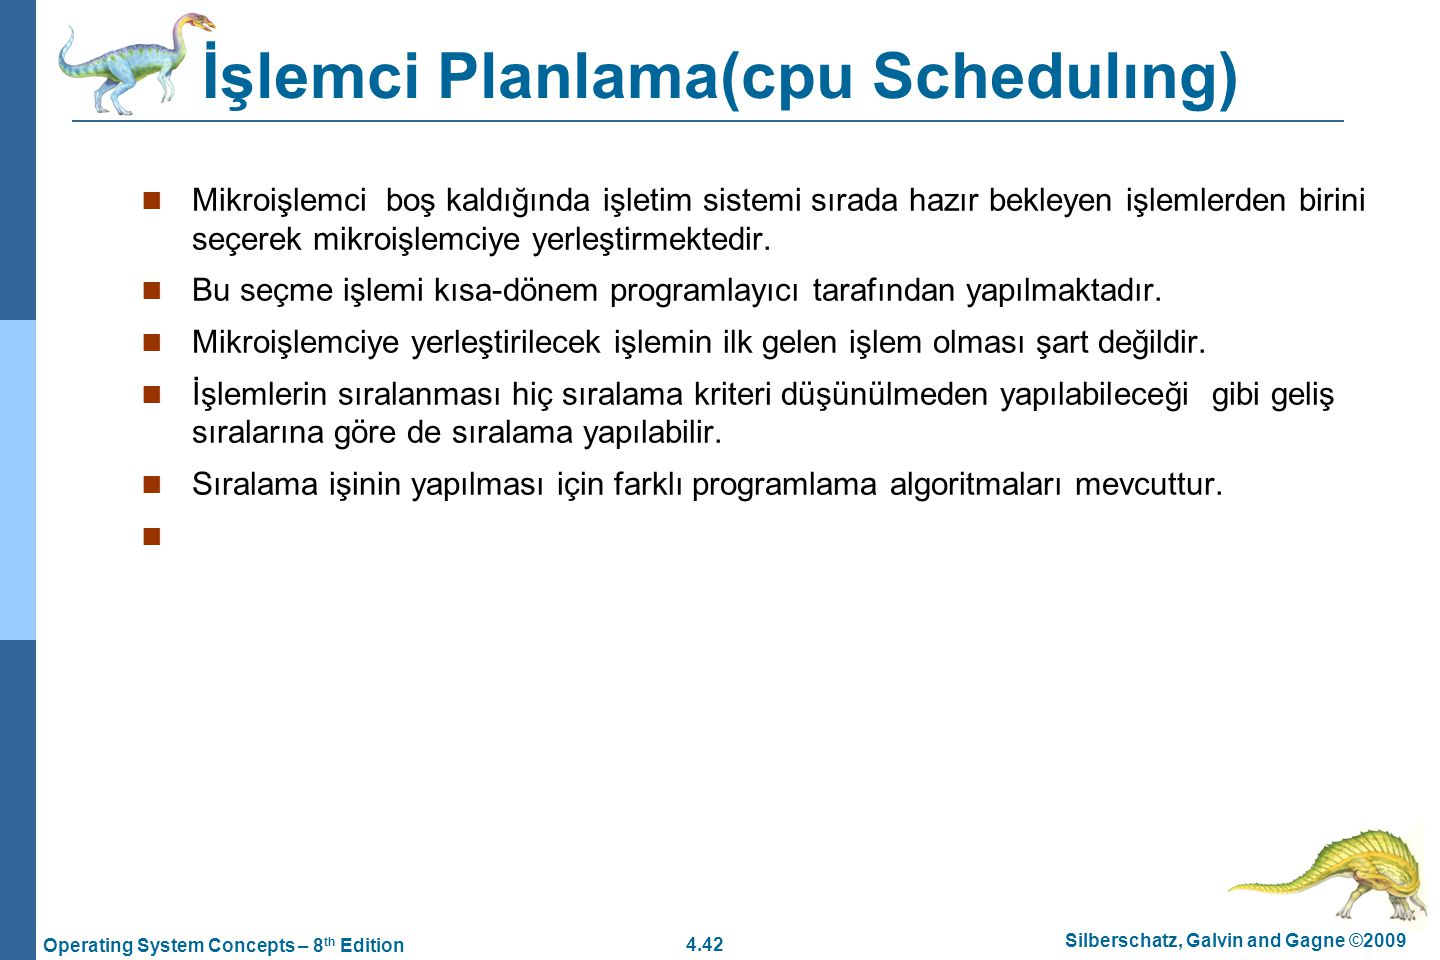 4.42 Silberschatz, Galvin and Gagne ©2009 Operating System Concepts – 8 th Edition İşlemci Planlama(cpu Schedulıng) Mikroişlemci boş kaldığında işletim sistemi sırada hazır bekleyen işlemlerden birini seçerek mikroişlemciye yerleştirmektedir.